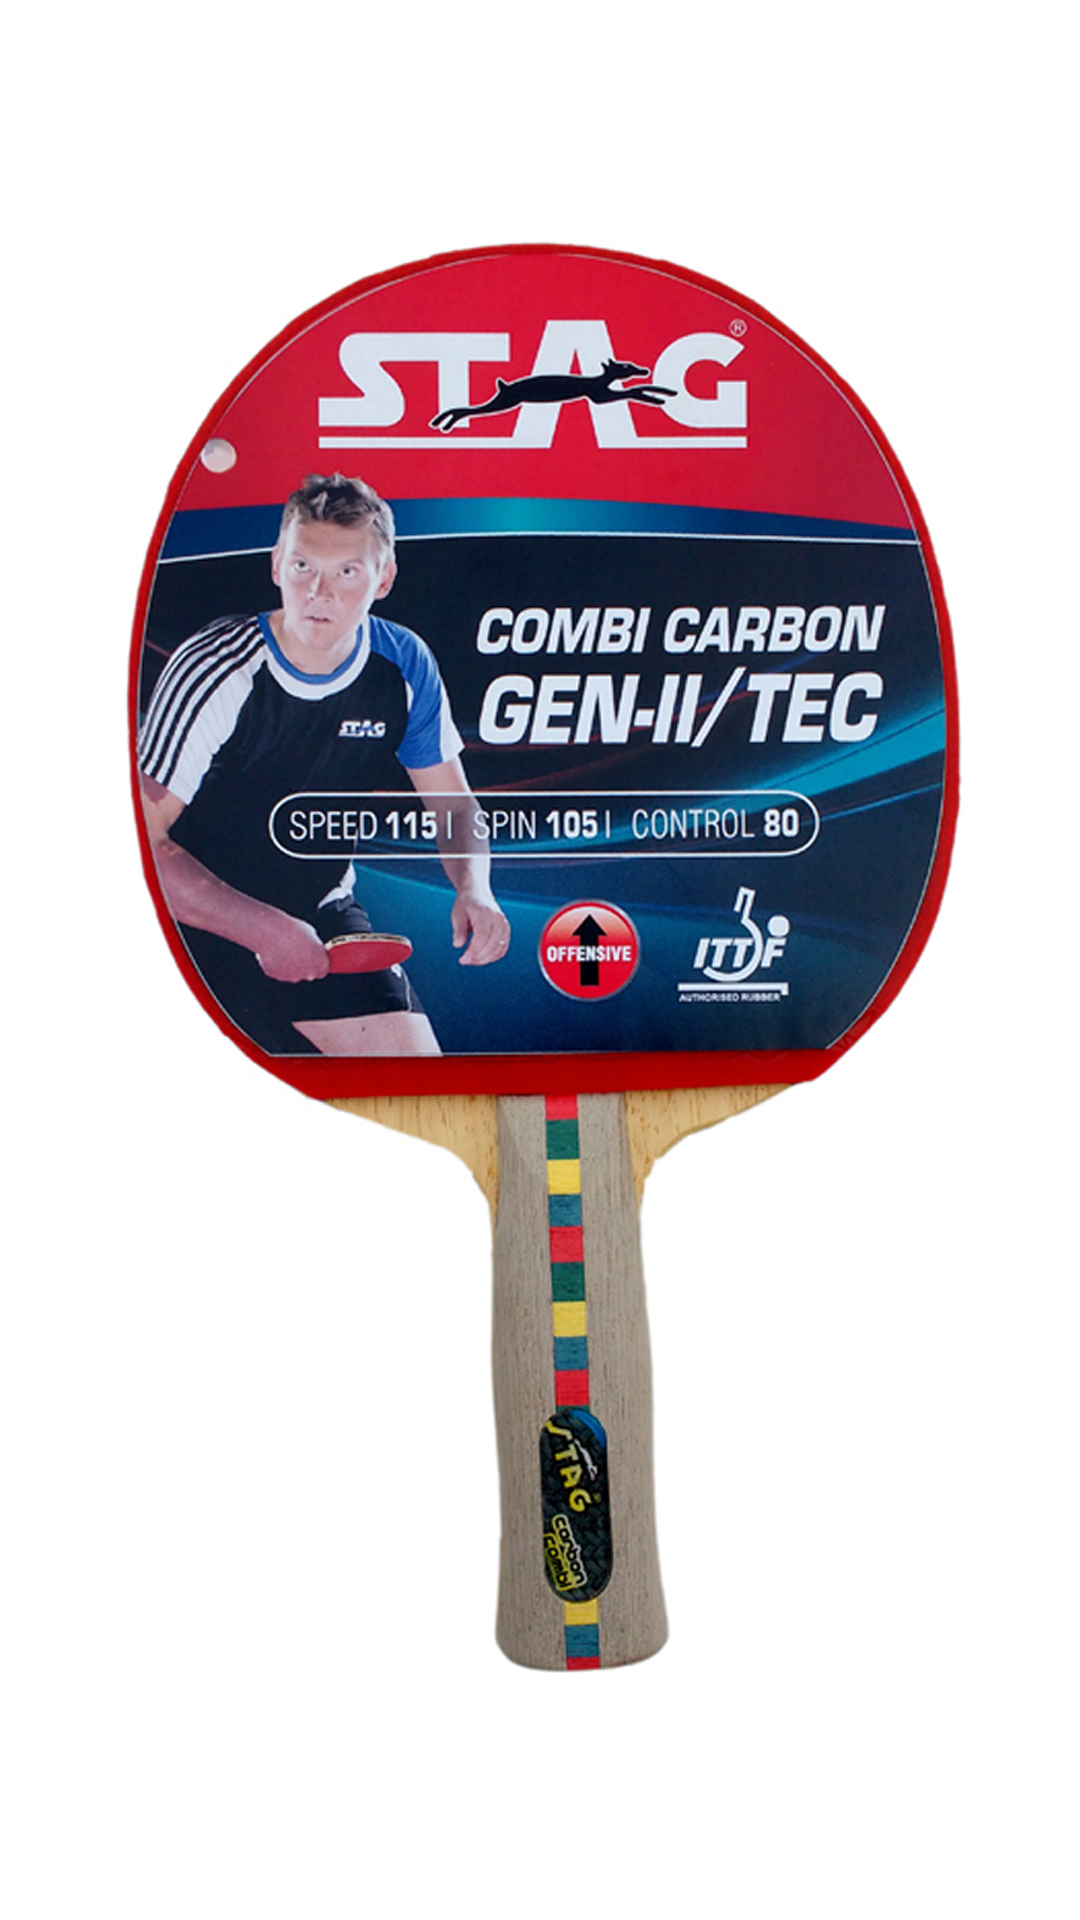 Stag Combi Carbon Gen Ii Tec Table Tennis Racquet-Black And Red